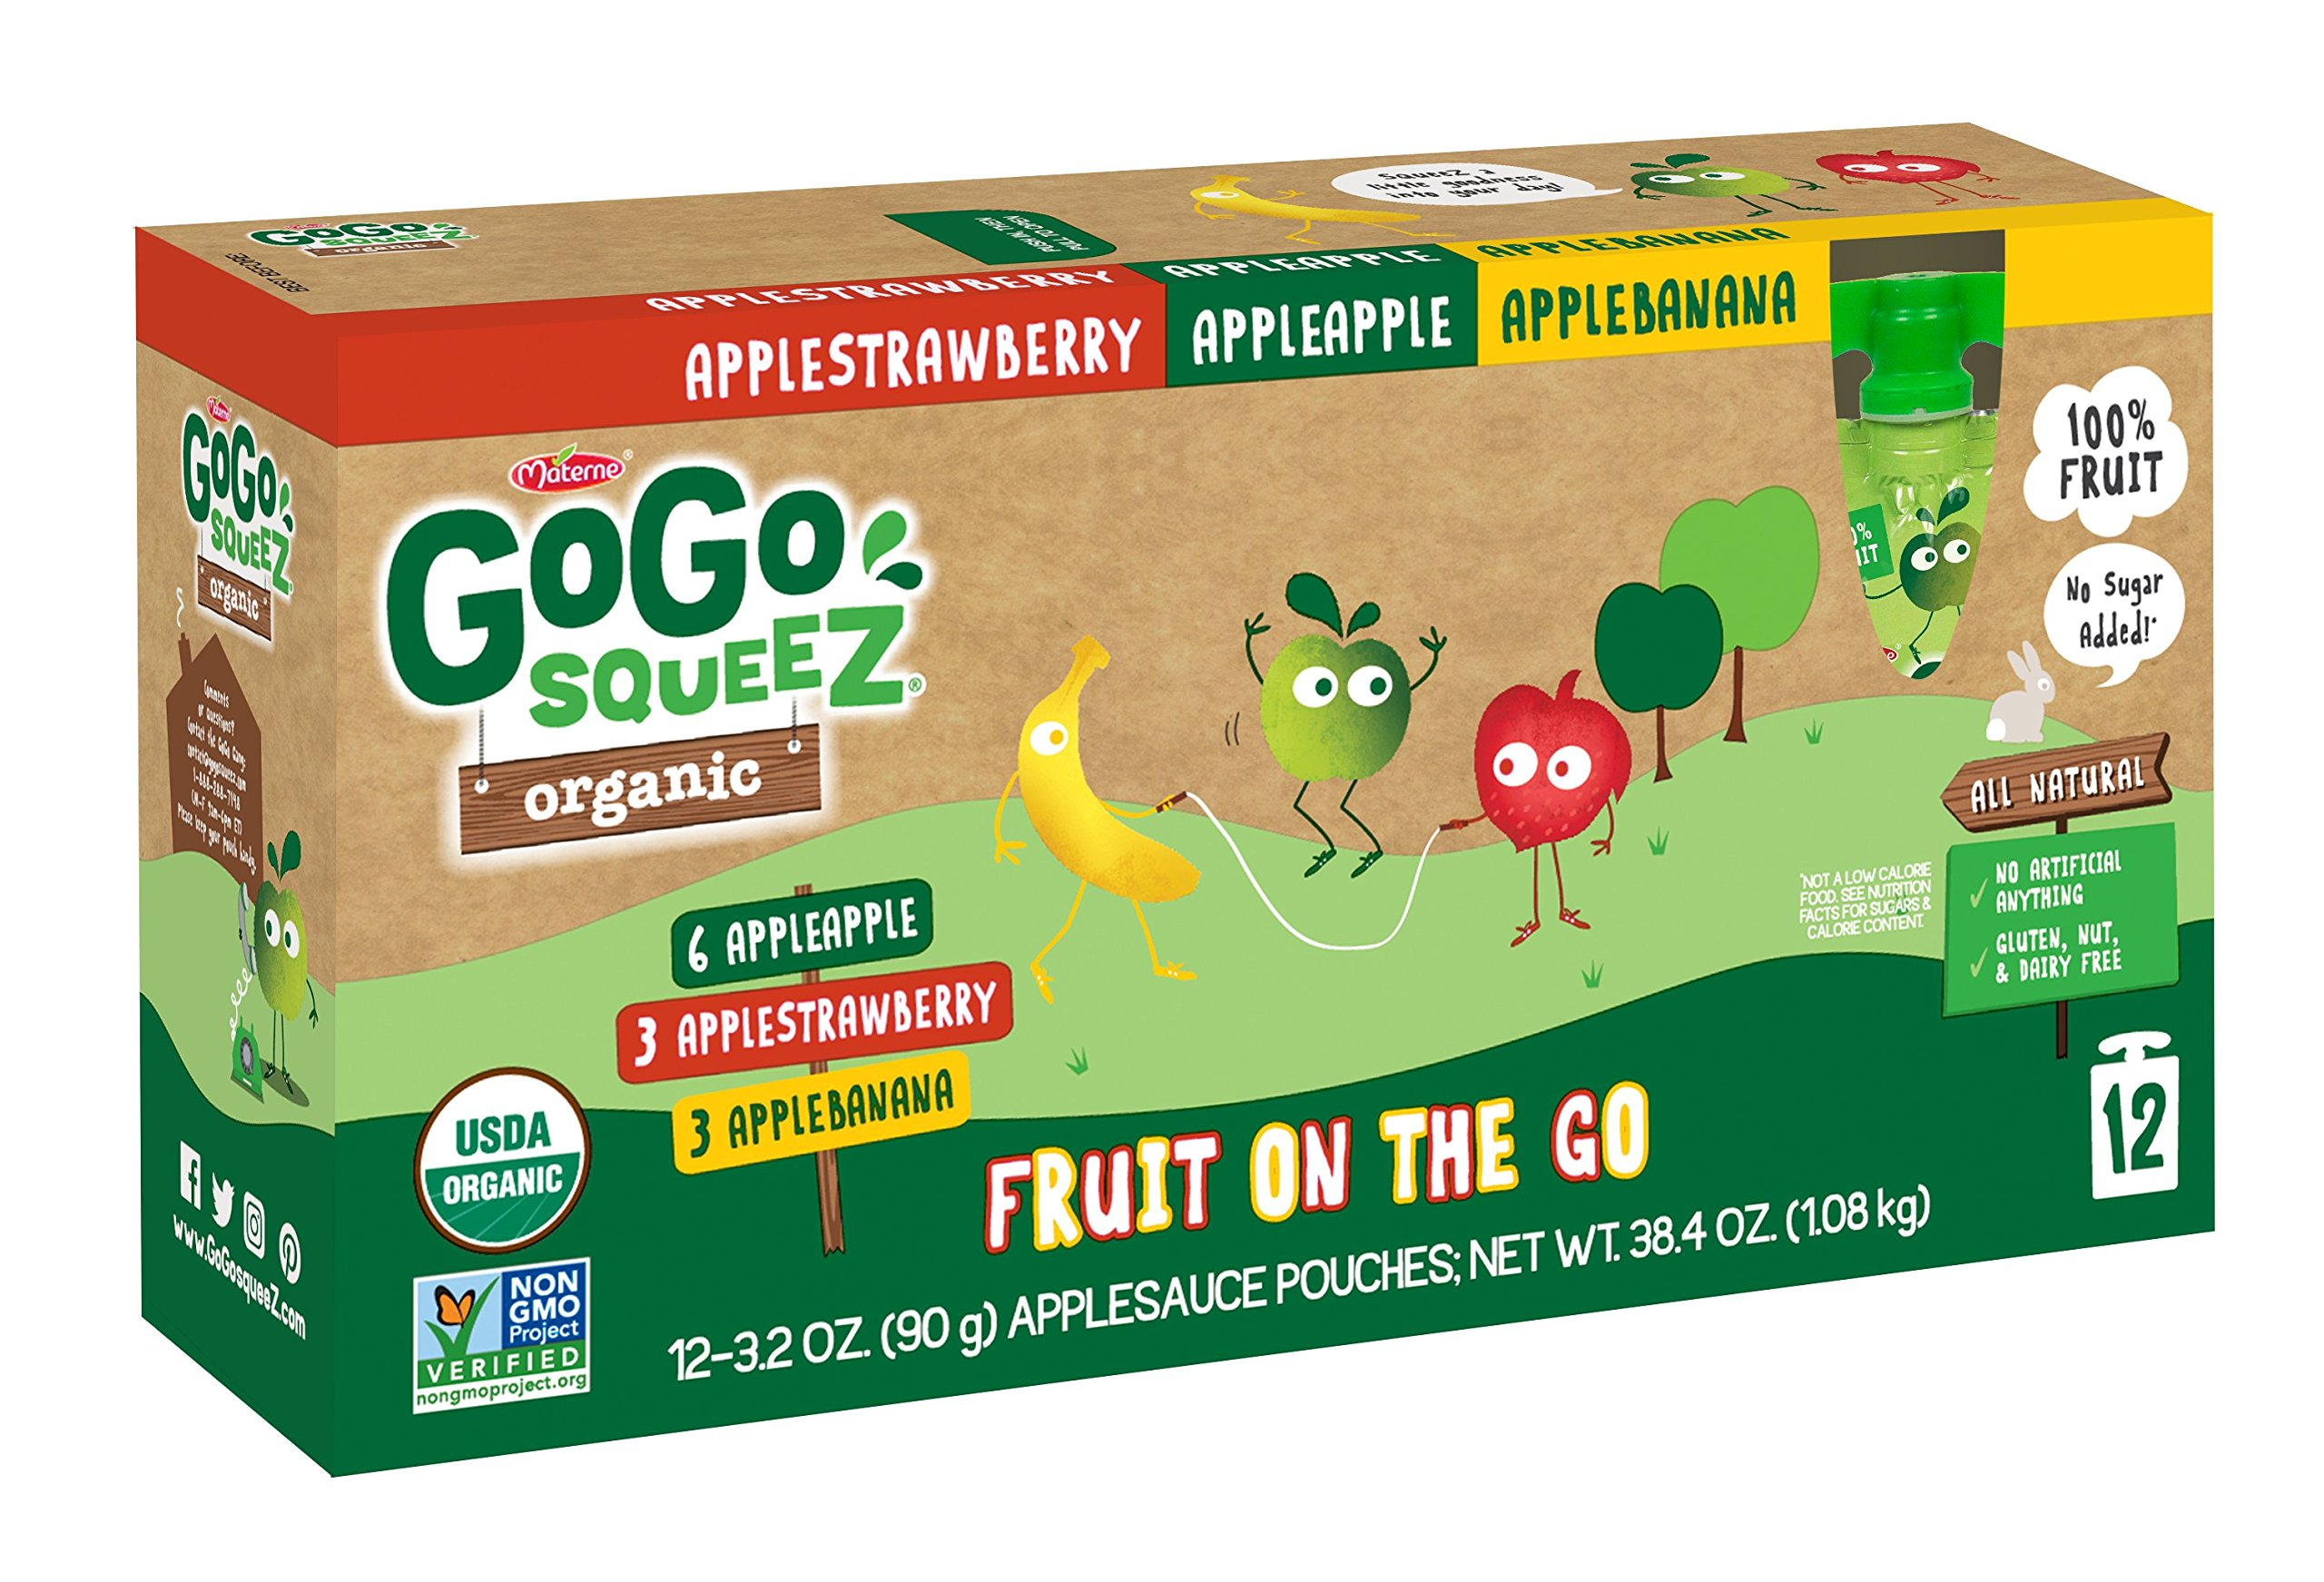 GoGo SqueeZ Organic Applesauce on the Go, Variety Pack (Apple Apple/Apple Banana/Apple Strawberry), 3.2 Ounce Portable BPA-Free Pouches, Gluten-Free, 72 Total Pouches (6 Boxes with 12 Pouches Each)